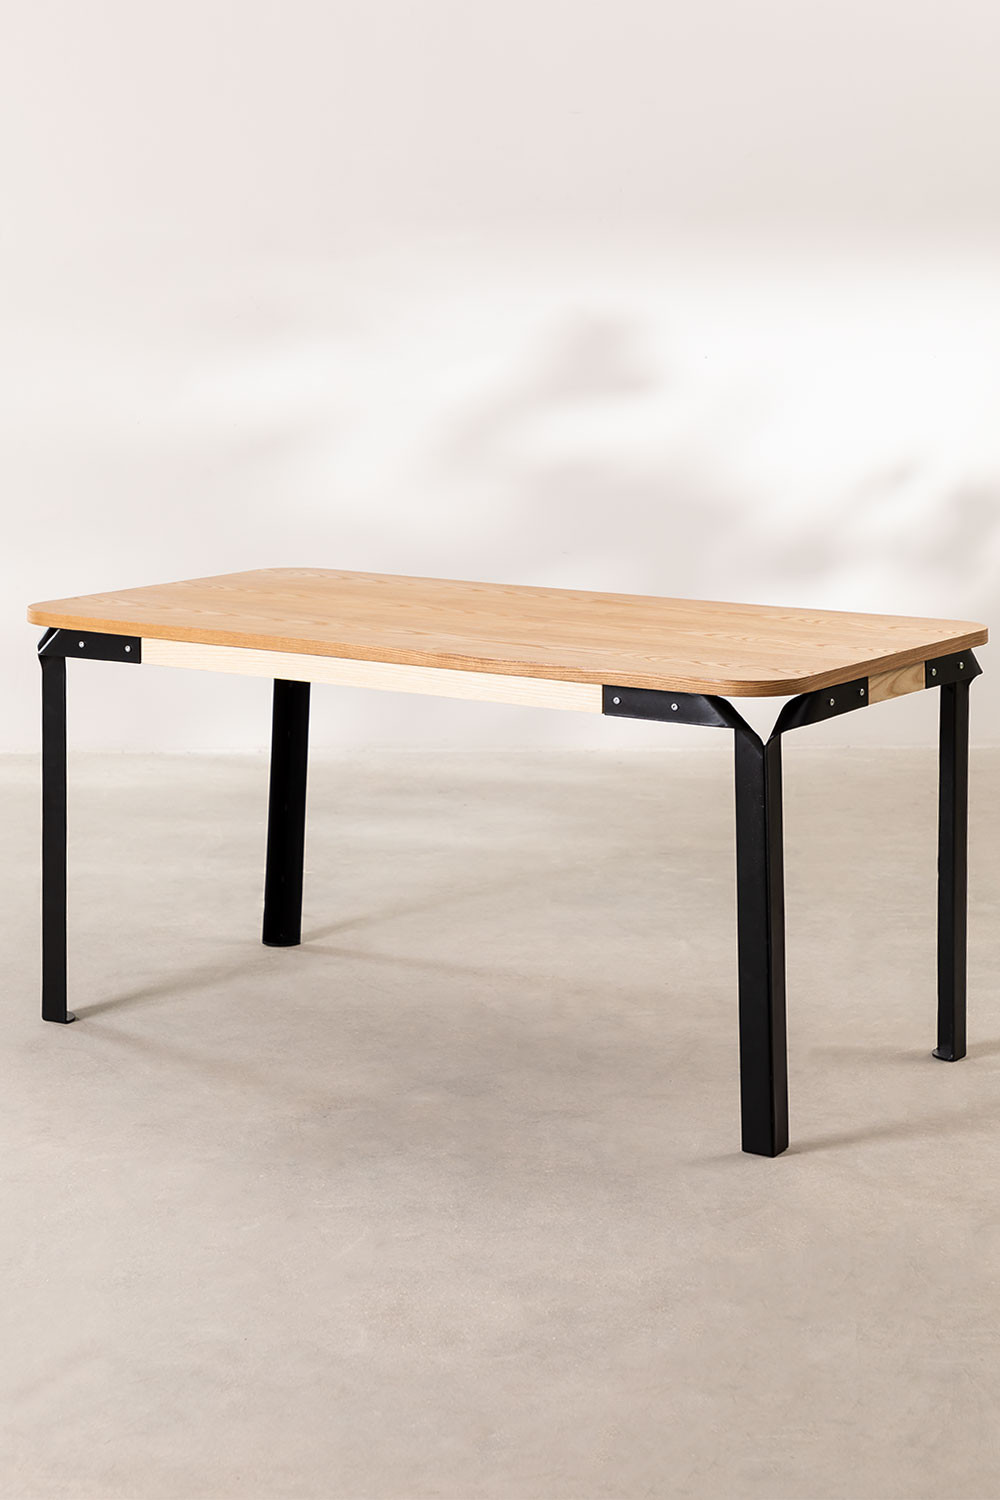 Almuh Table, gallery image 1